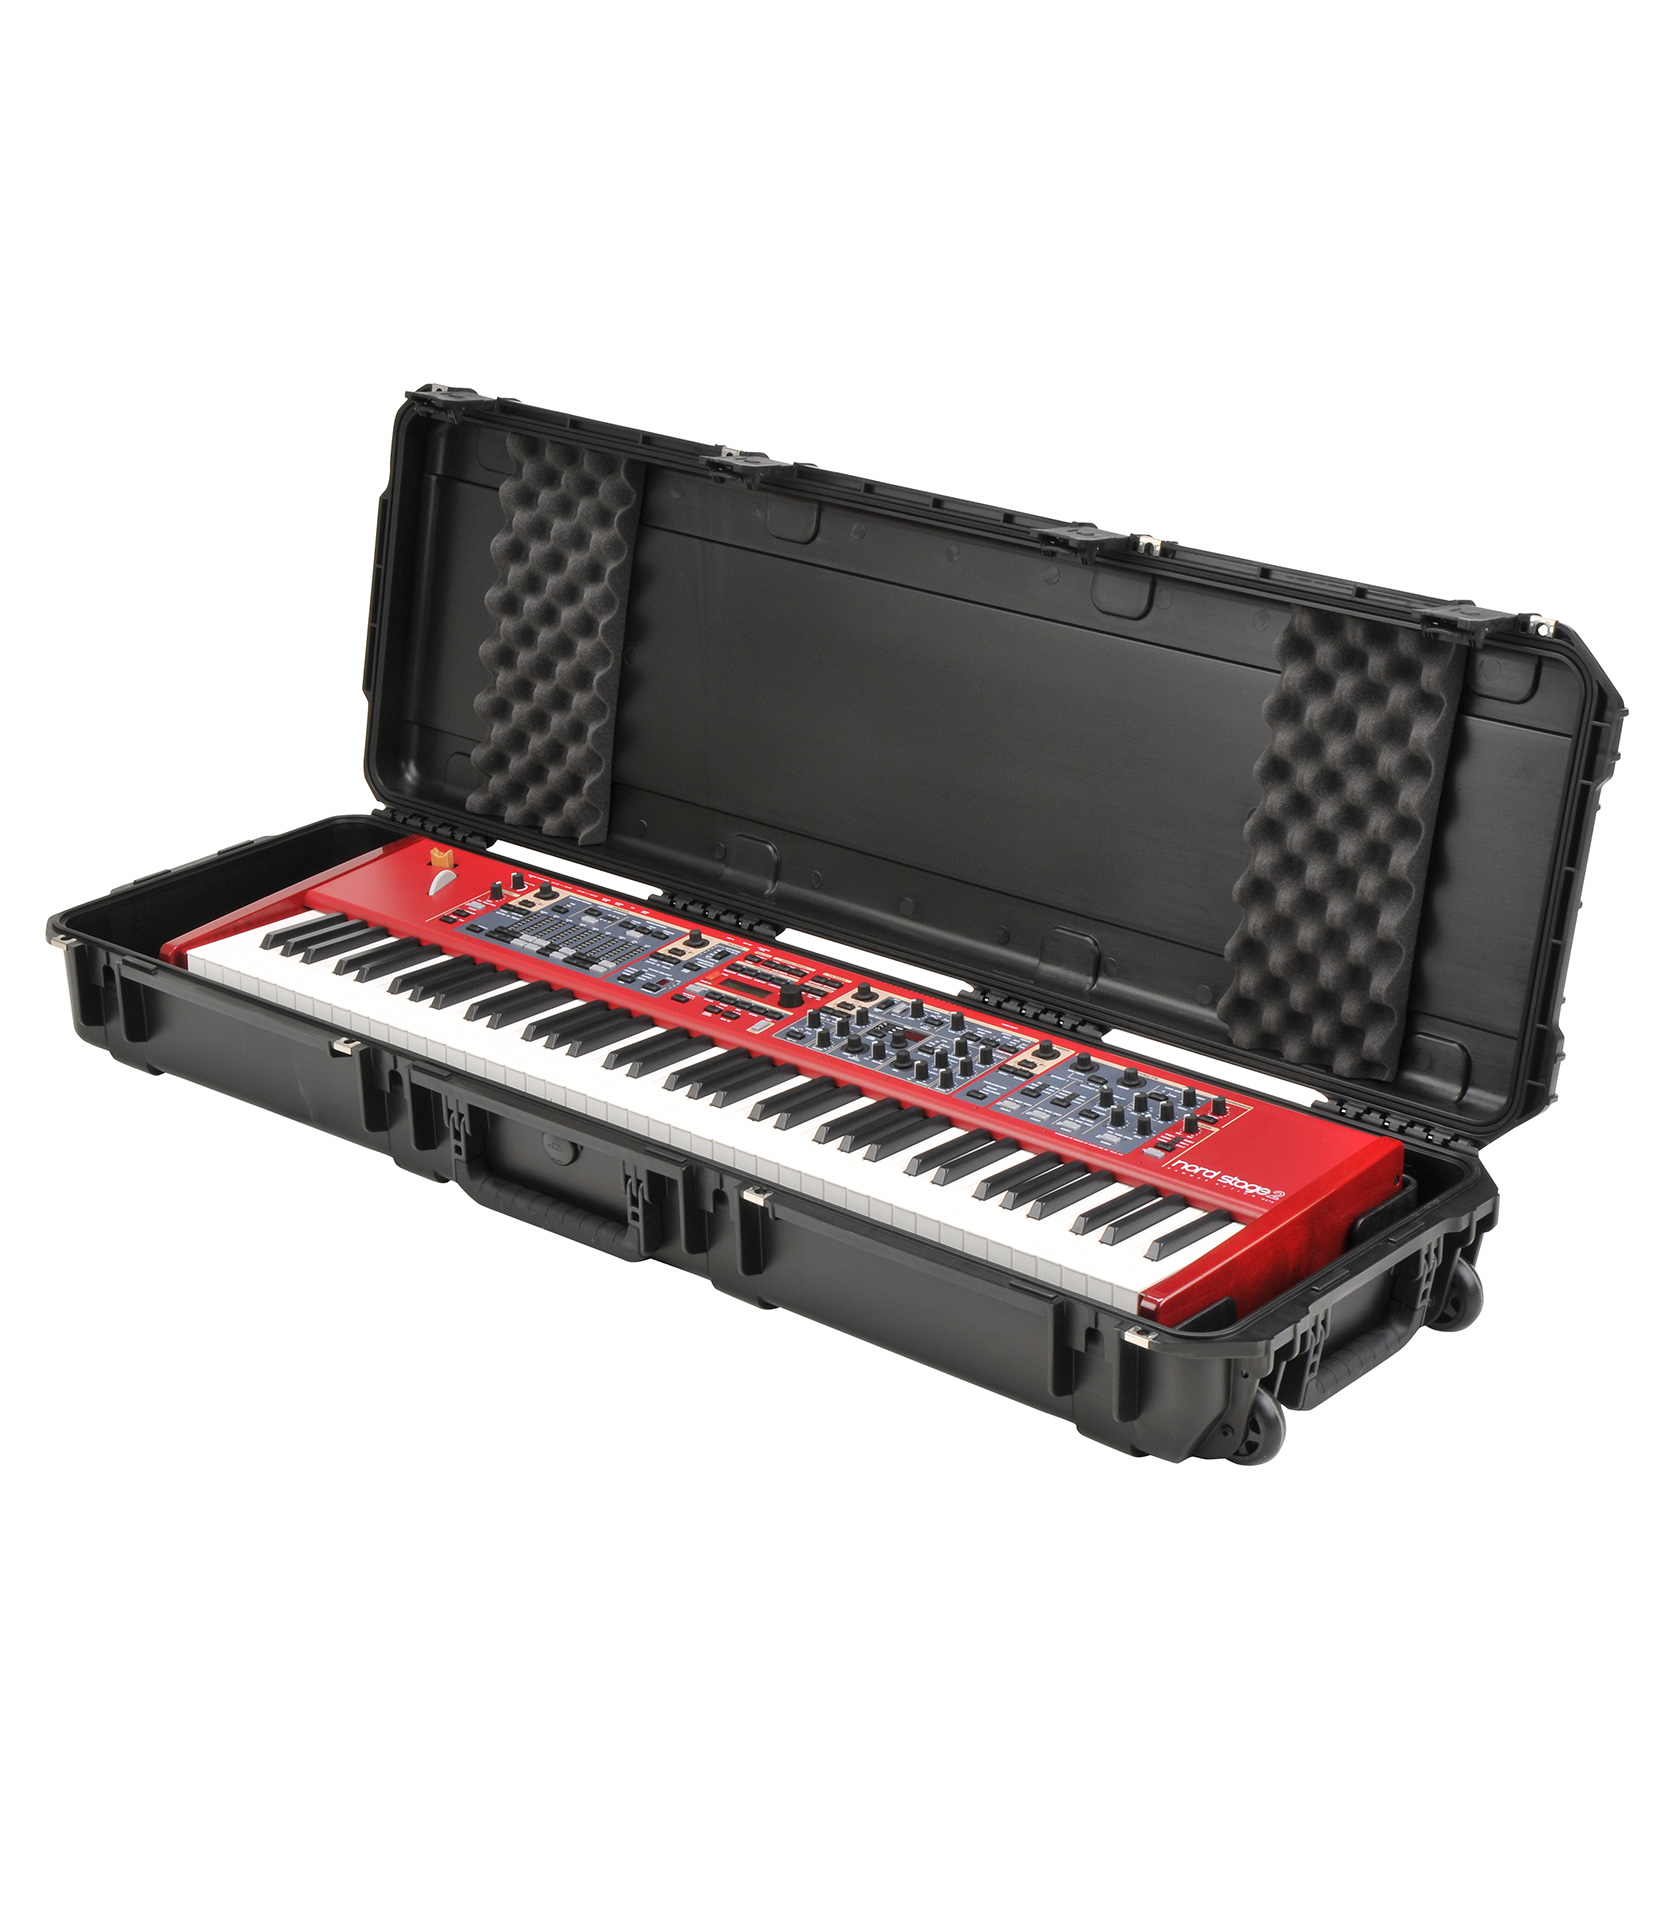 SKB - 3I 5014 KBD Injection Molded Waterproof 76 Note K - info@melodyhousemi.com